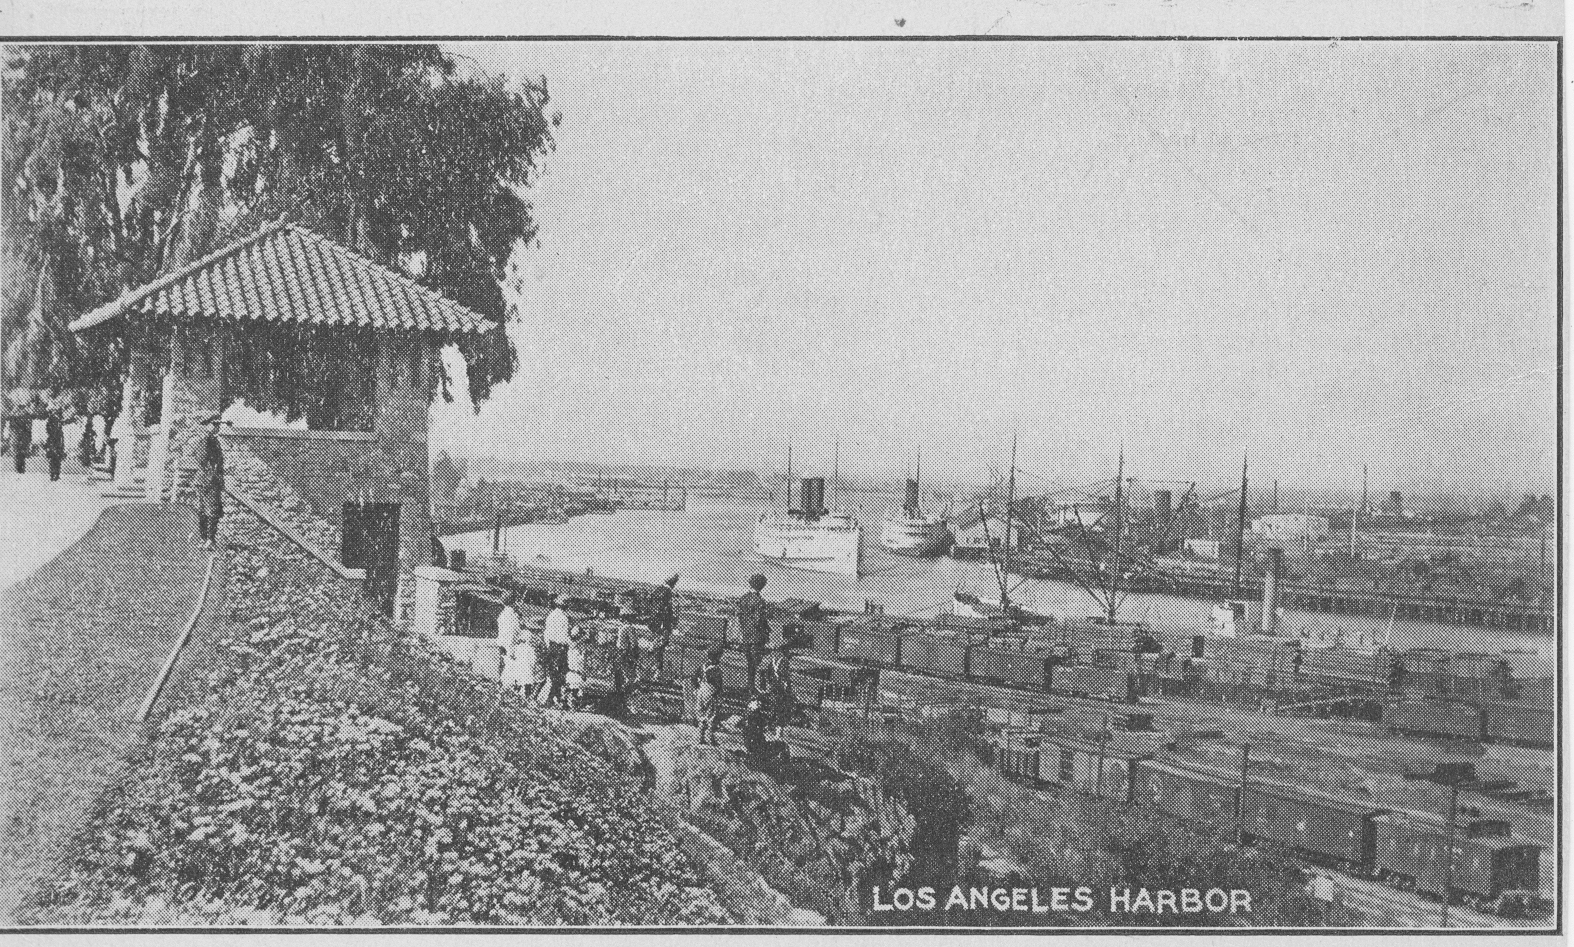 Los Angeles Harbor